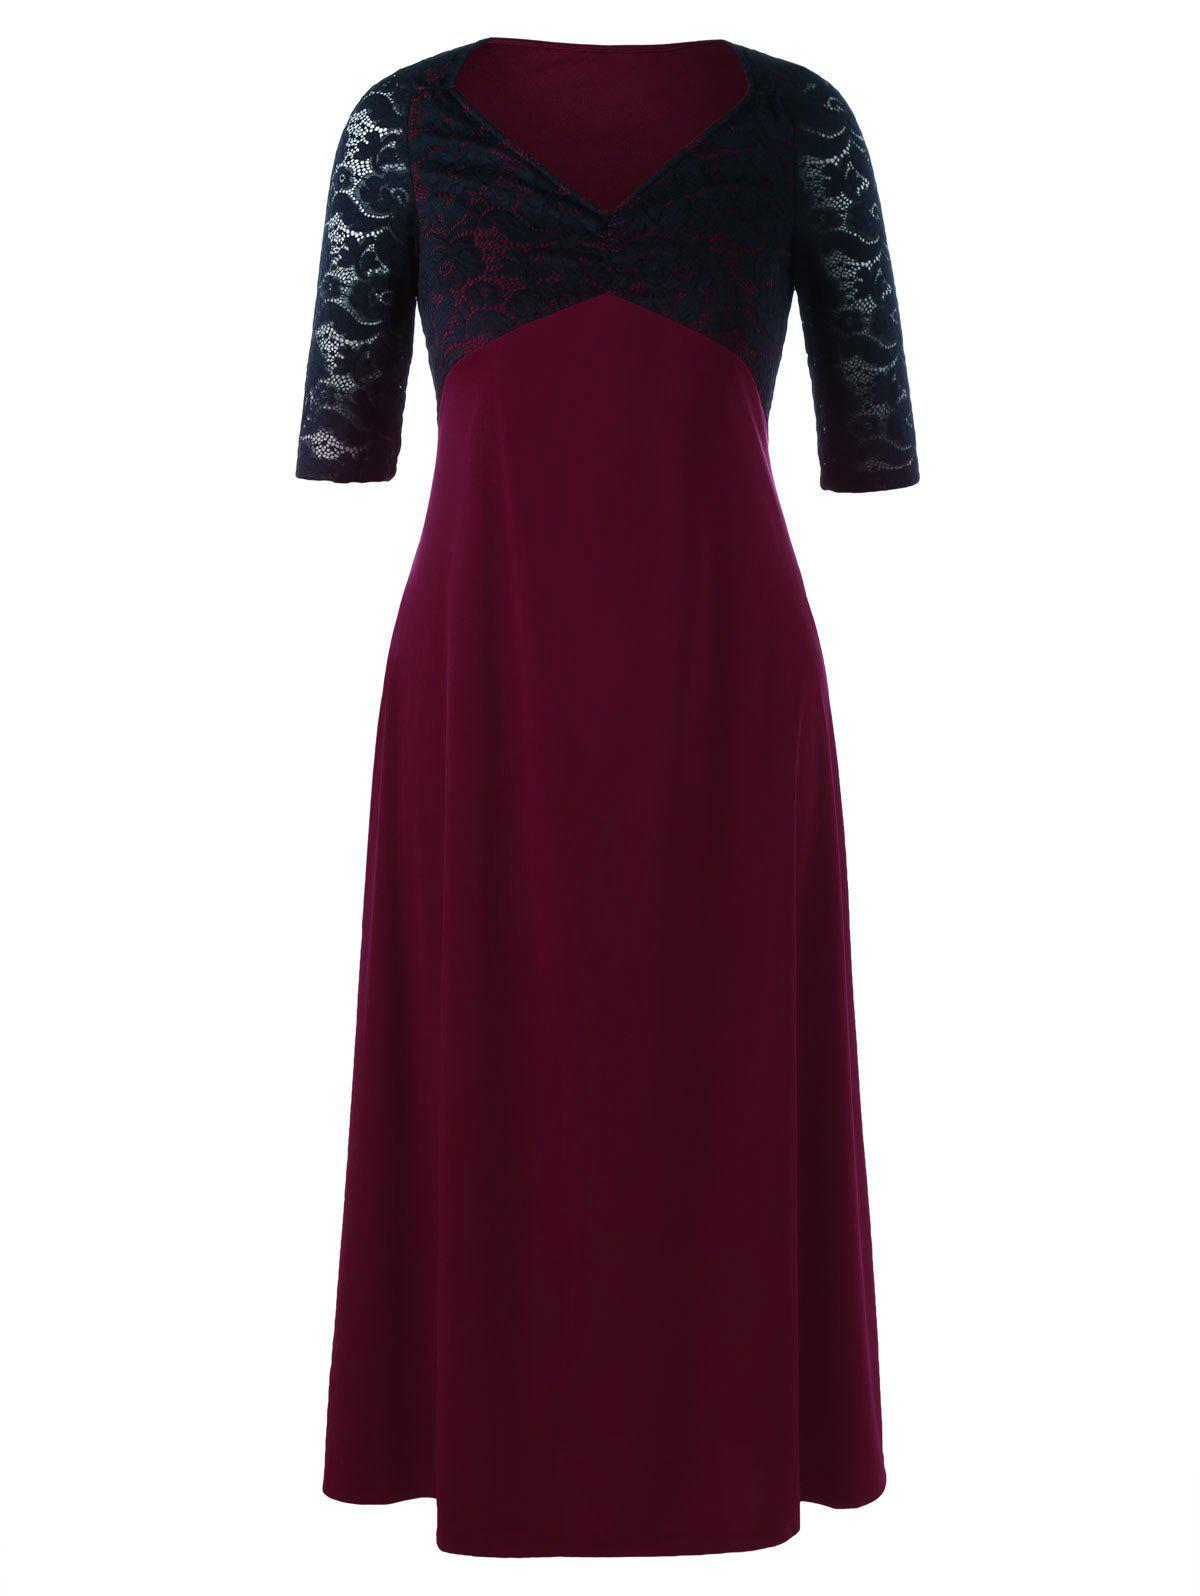 Plus Size Lace Yoke Two Tone Maxi DressWOMEN<br><br>Size: 3XL; Color: RED WITH BLACK; Style: Brief; Material: Polyester,Spandex; Silhouette: A-Line; Dresses Length: Ankle-Length; Neckline: V-Neck; Sleeve Length: Half Sleeves; Embellishment: Lace; Pattern Type: Floral; With Belt: No; Season: Summer; Weight: 0.5700kg; Package Contents: 1 x Dress;